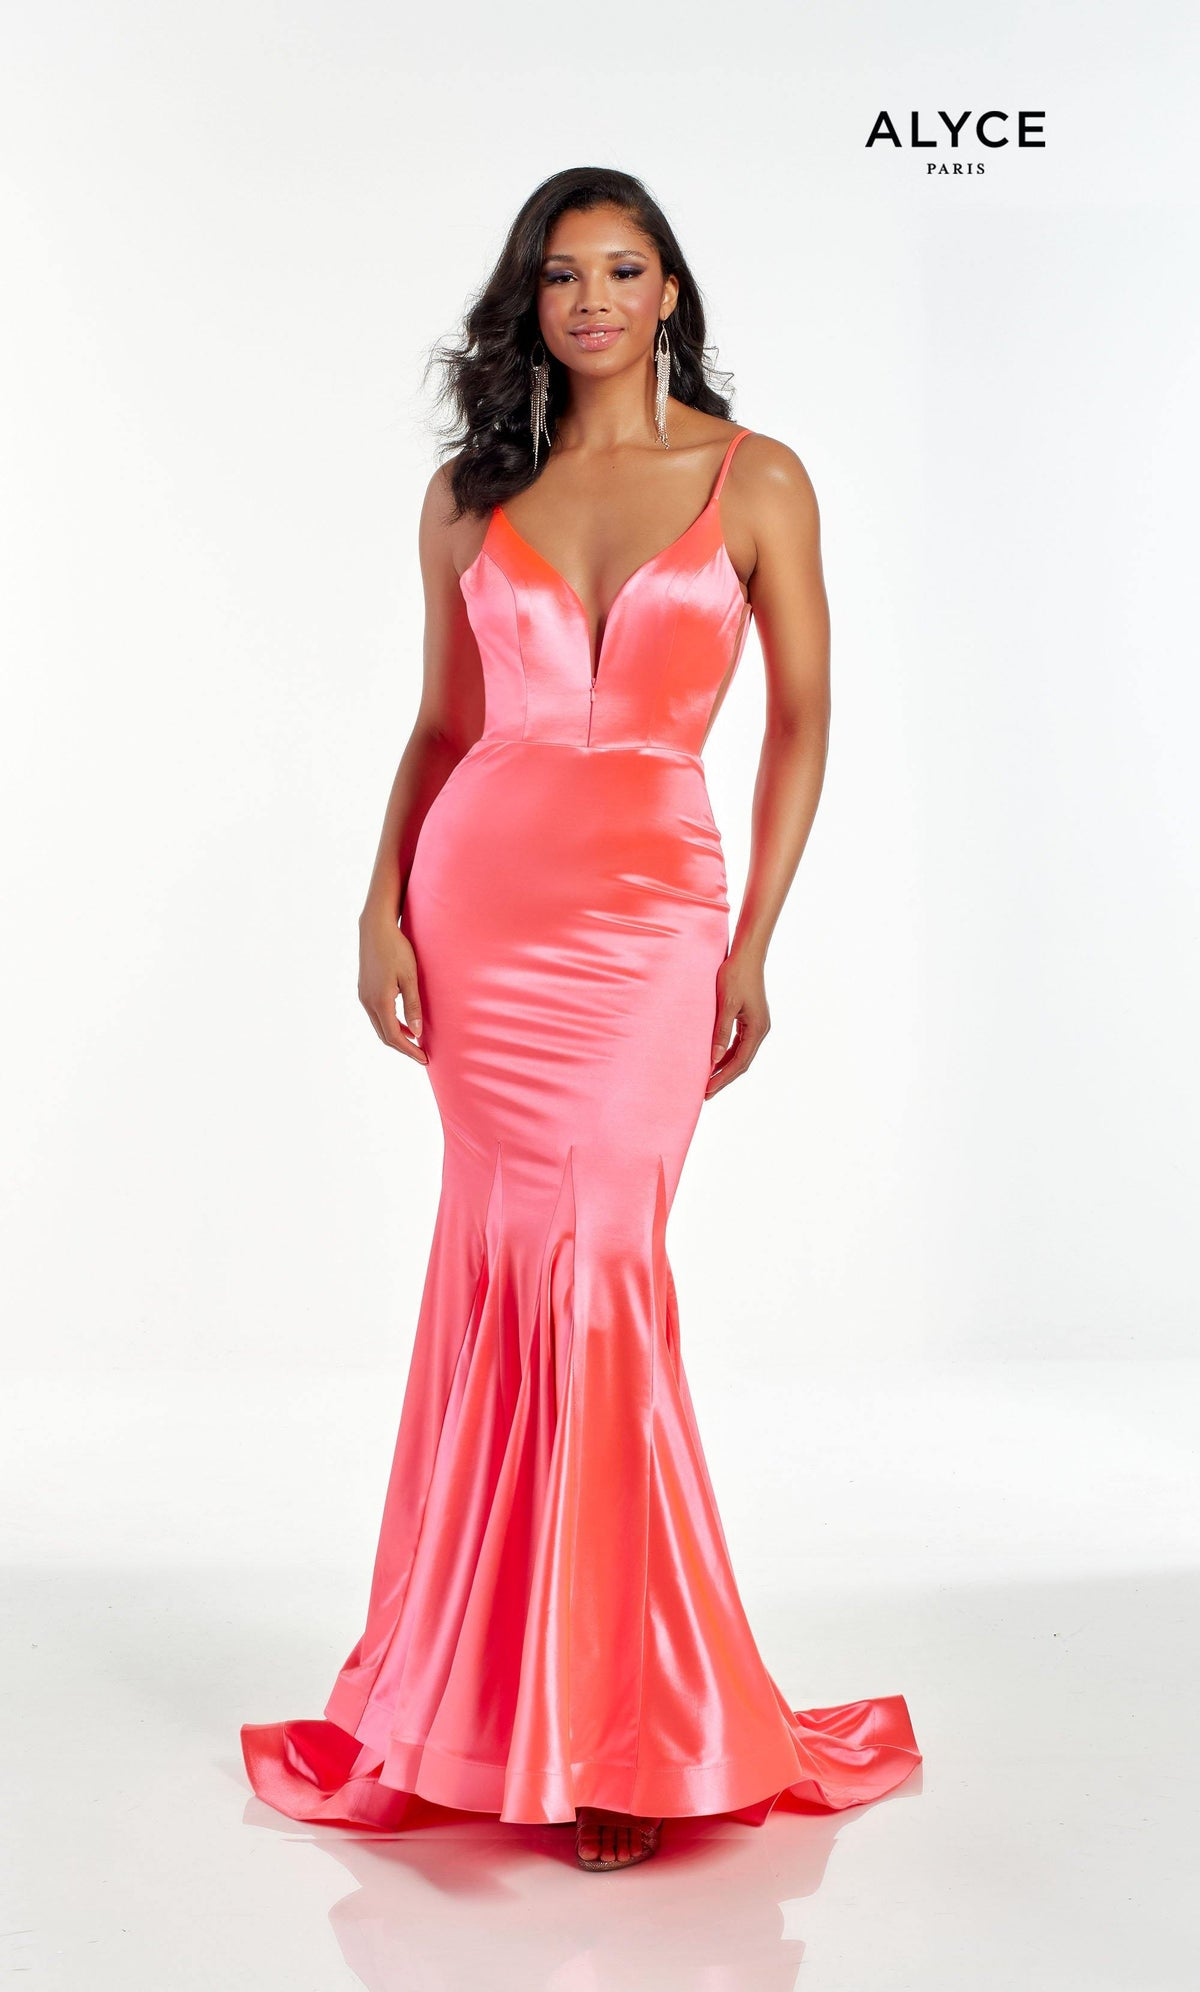 Hyper Pink fit and flare prom dress with an adjustable plunging neckline